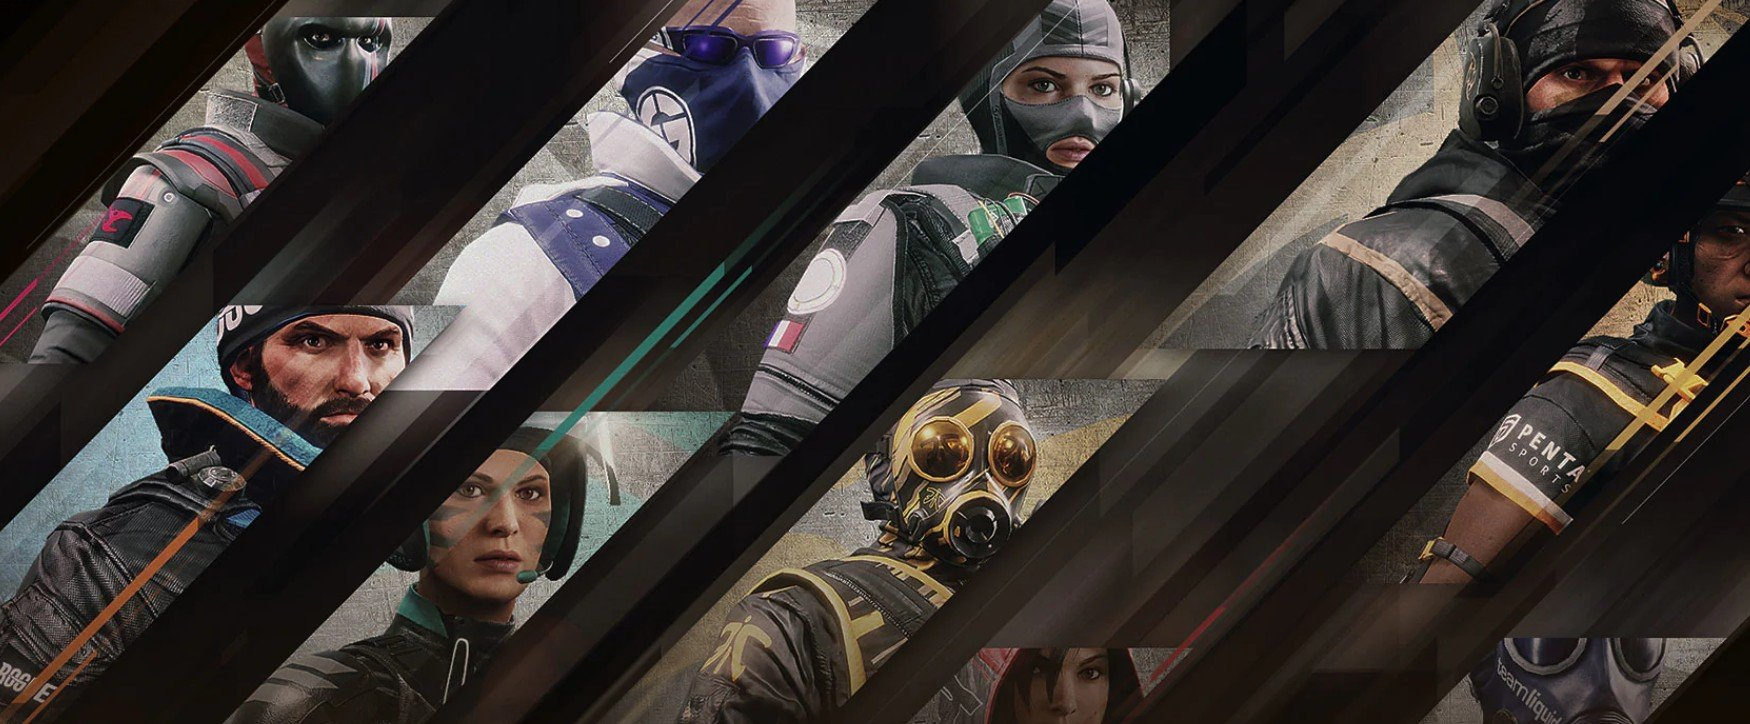 Pro Team Uniforms and Headgears